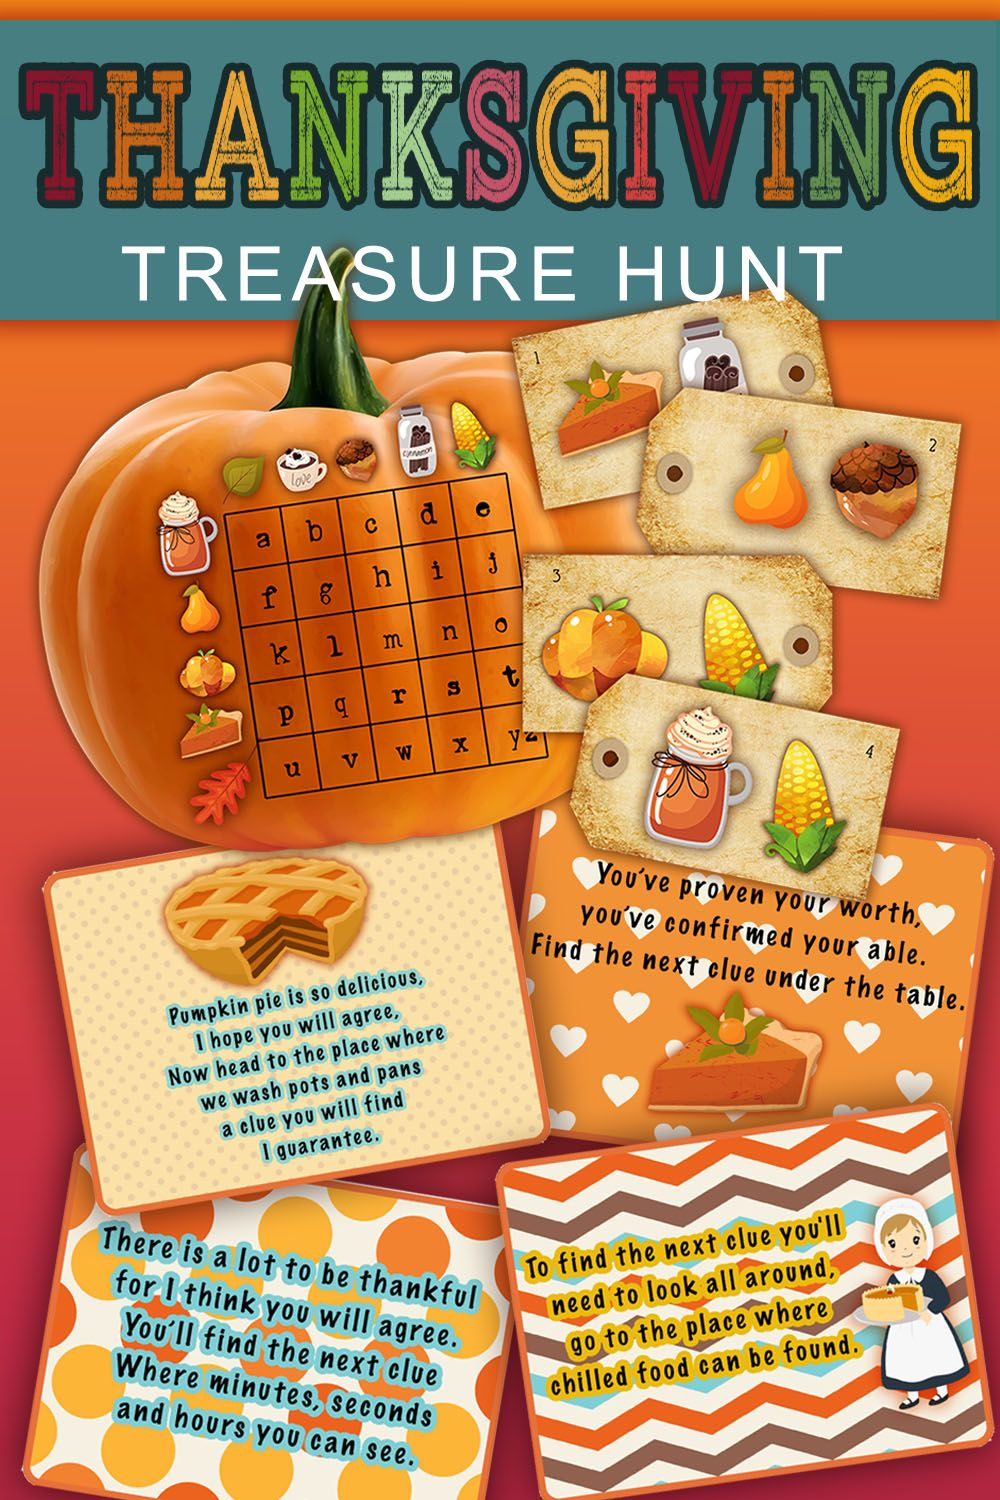 Thanksgiving Scavenger Hunt Treasure Hunt Clues Fun Themed Etsy In 2020 Thanksgiving Activities For Kids Thanksgiving Scavenger Hunt Treasure Hunt For Kids